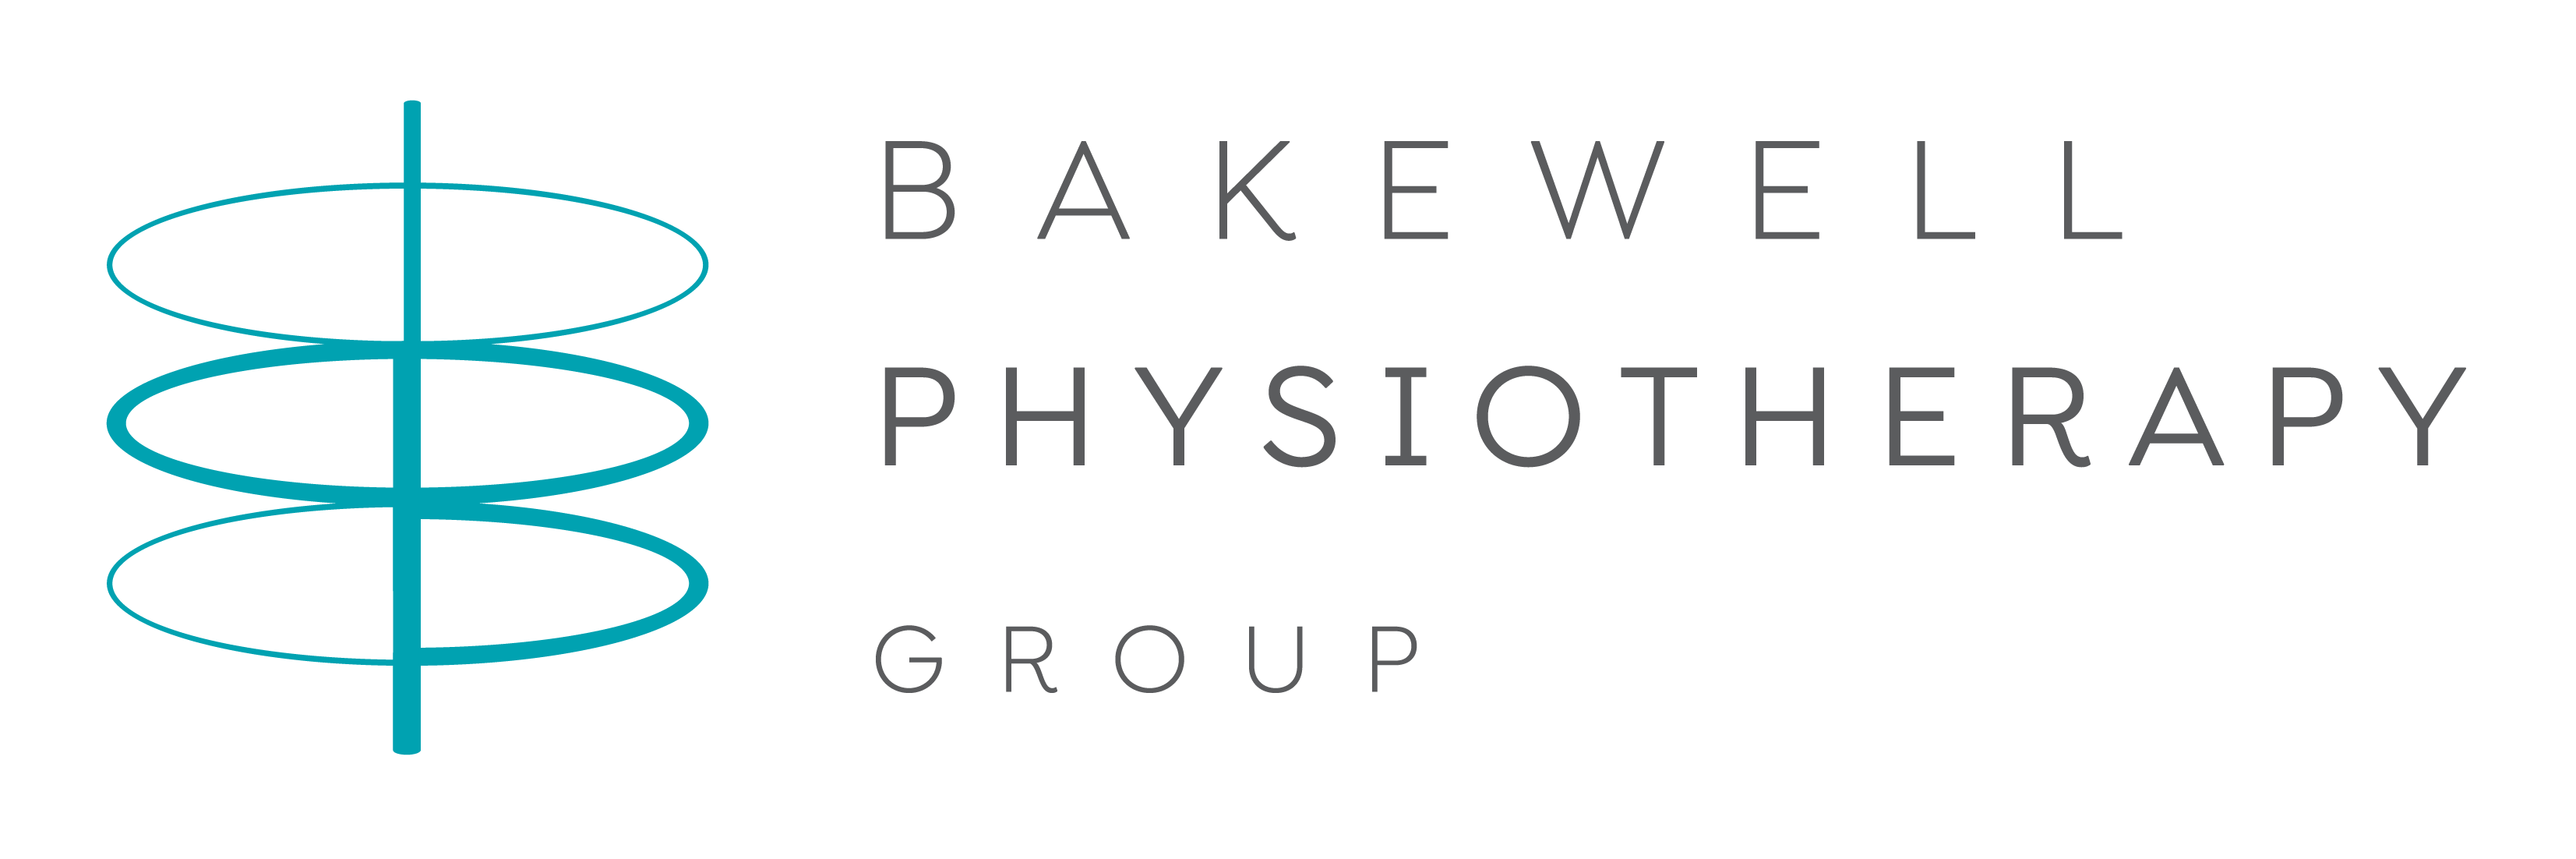 Bakewell Physiotherapy